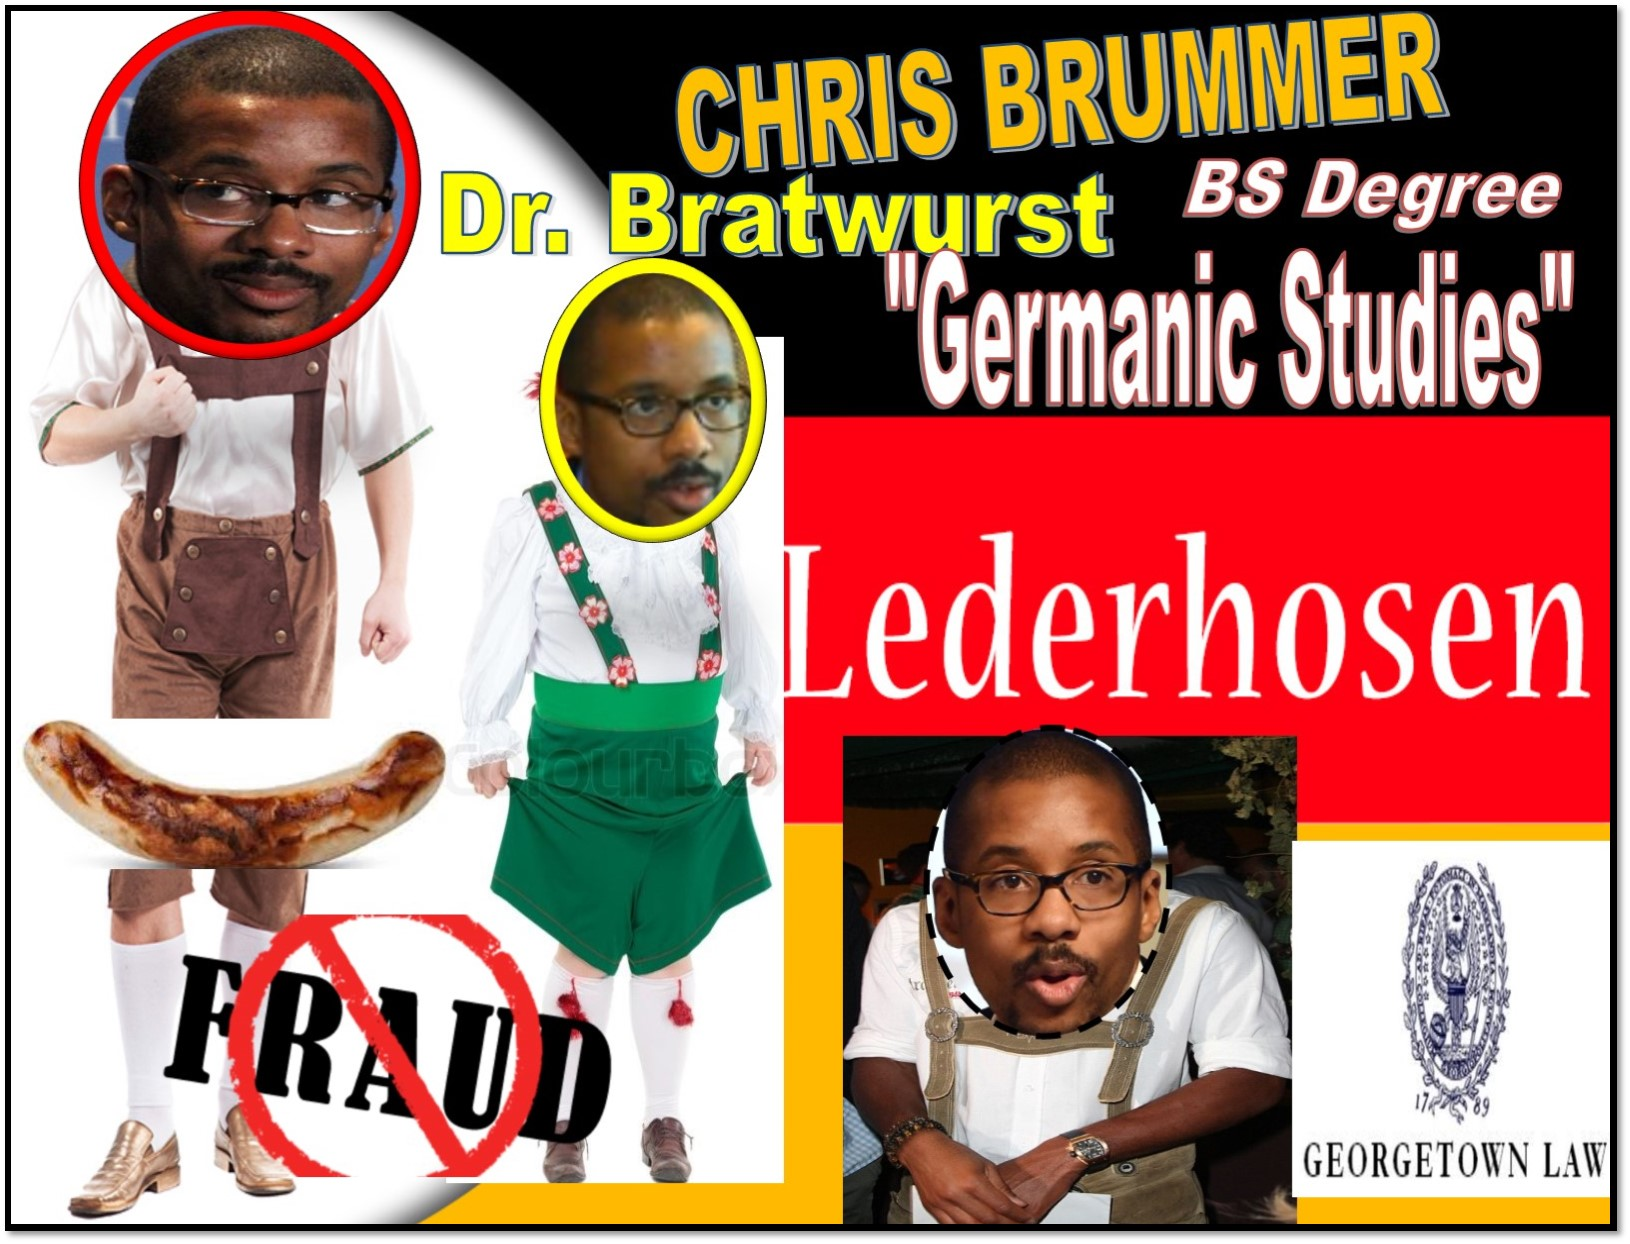 CHRIS BRUMMER, Germanic Studies, Crypo Fraud, Cryptocurrency, ICO, Georgetown Law Center, professor, Rachel Loko, SEC, Chauncey Brummer, Nicole Gueron, Ashleigh Hunt, Daren Garcia, lawyer, fraud